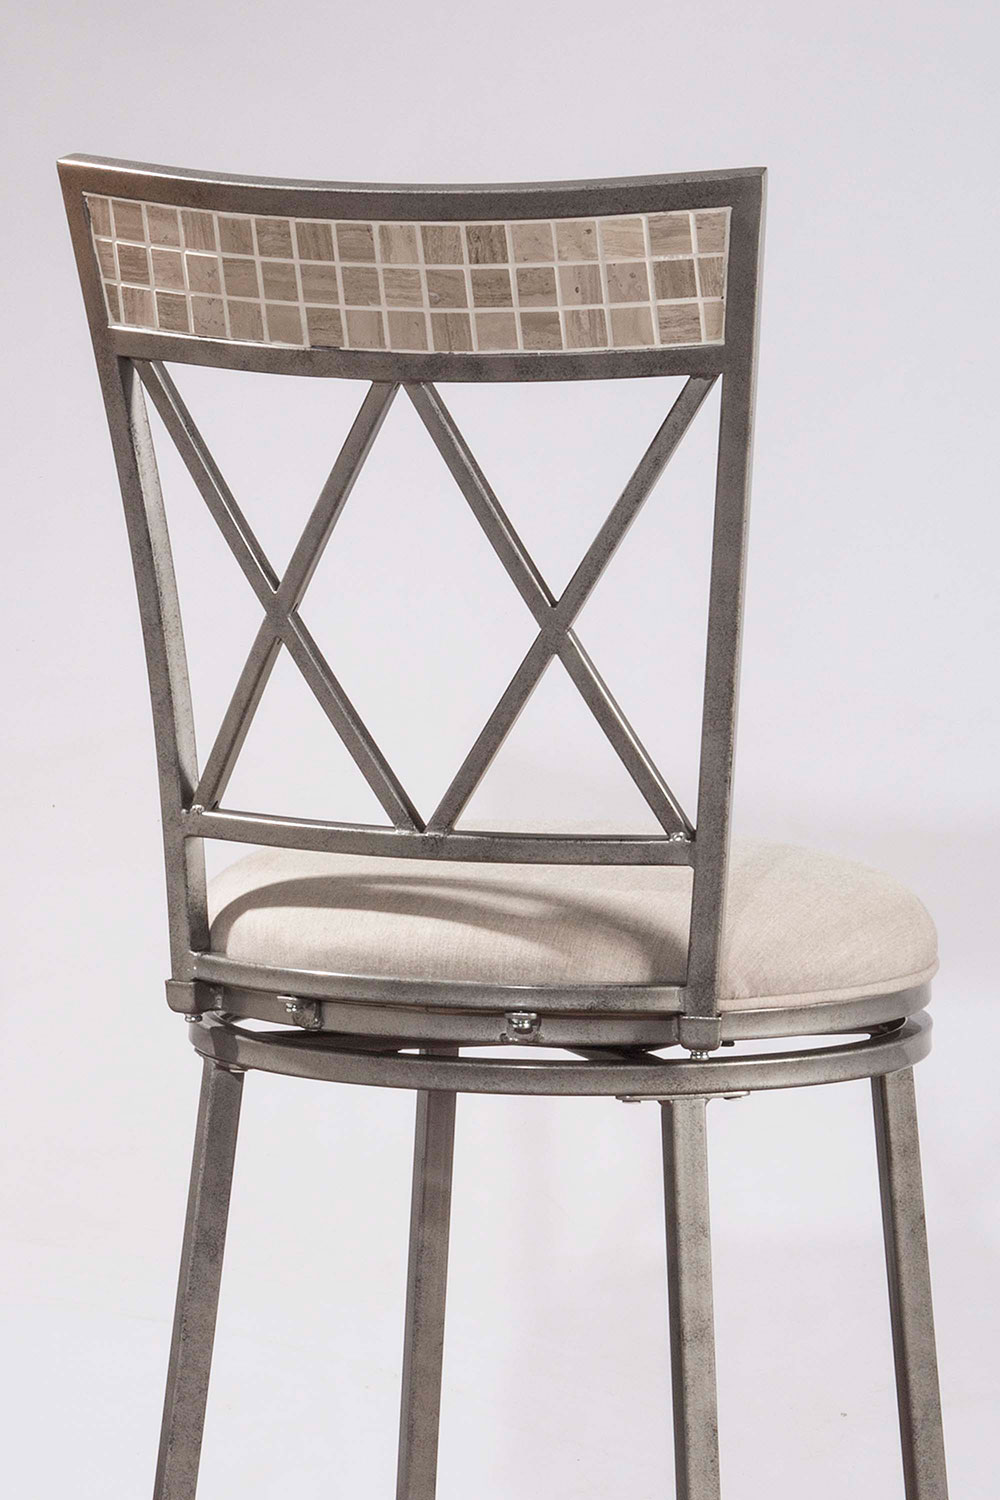 Hillsdale Milestone Indoor/Outdoor Swivel Counter Stool - Aged Pewter